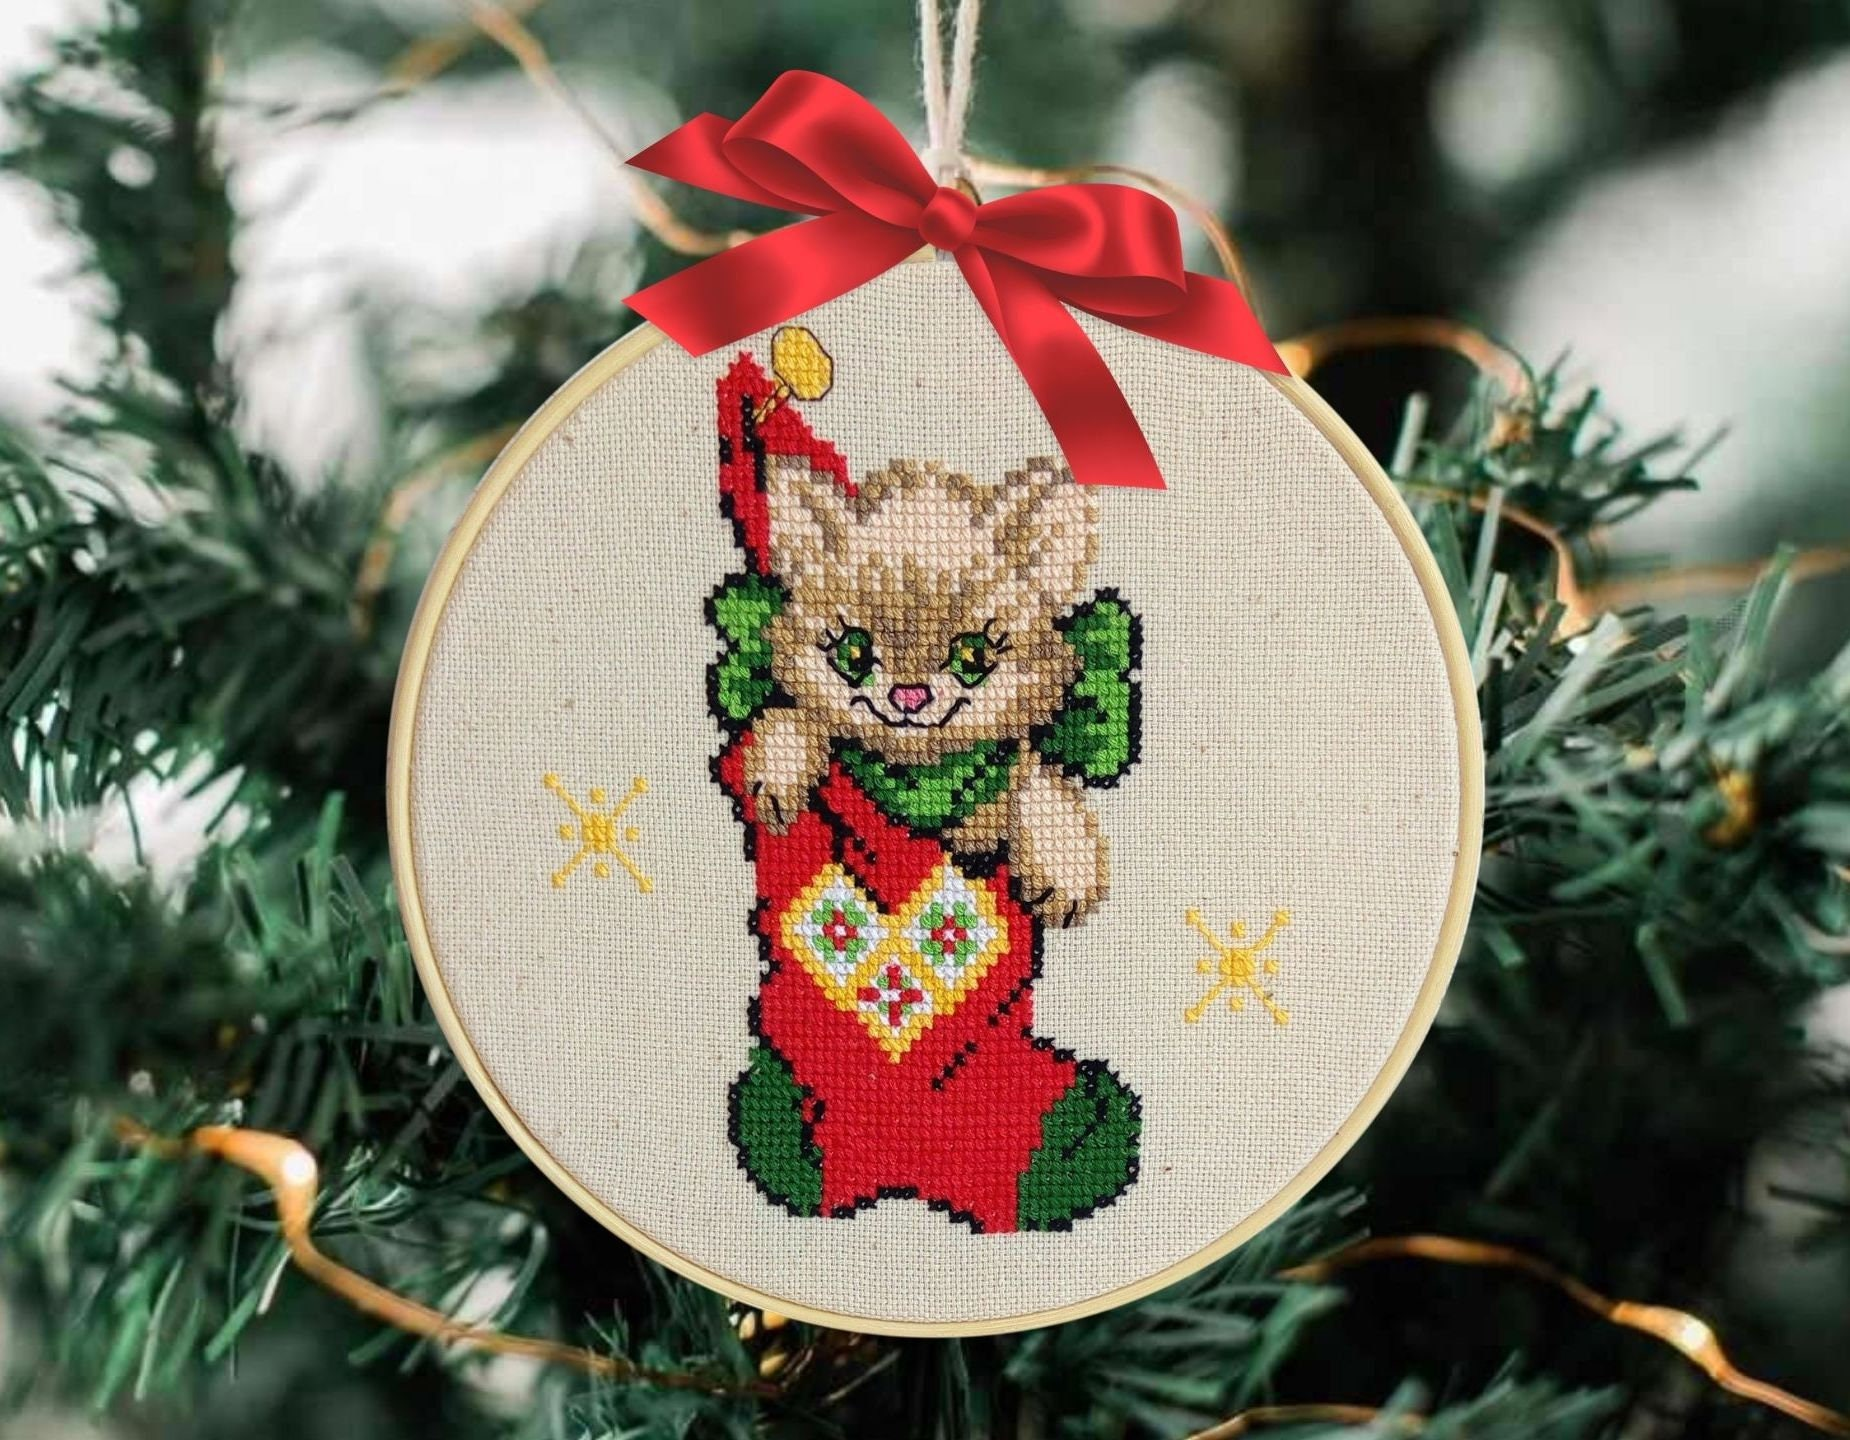 Snarky Christmas Cross Stitch Completed in Hoop Ornament